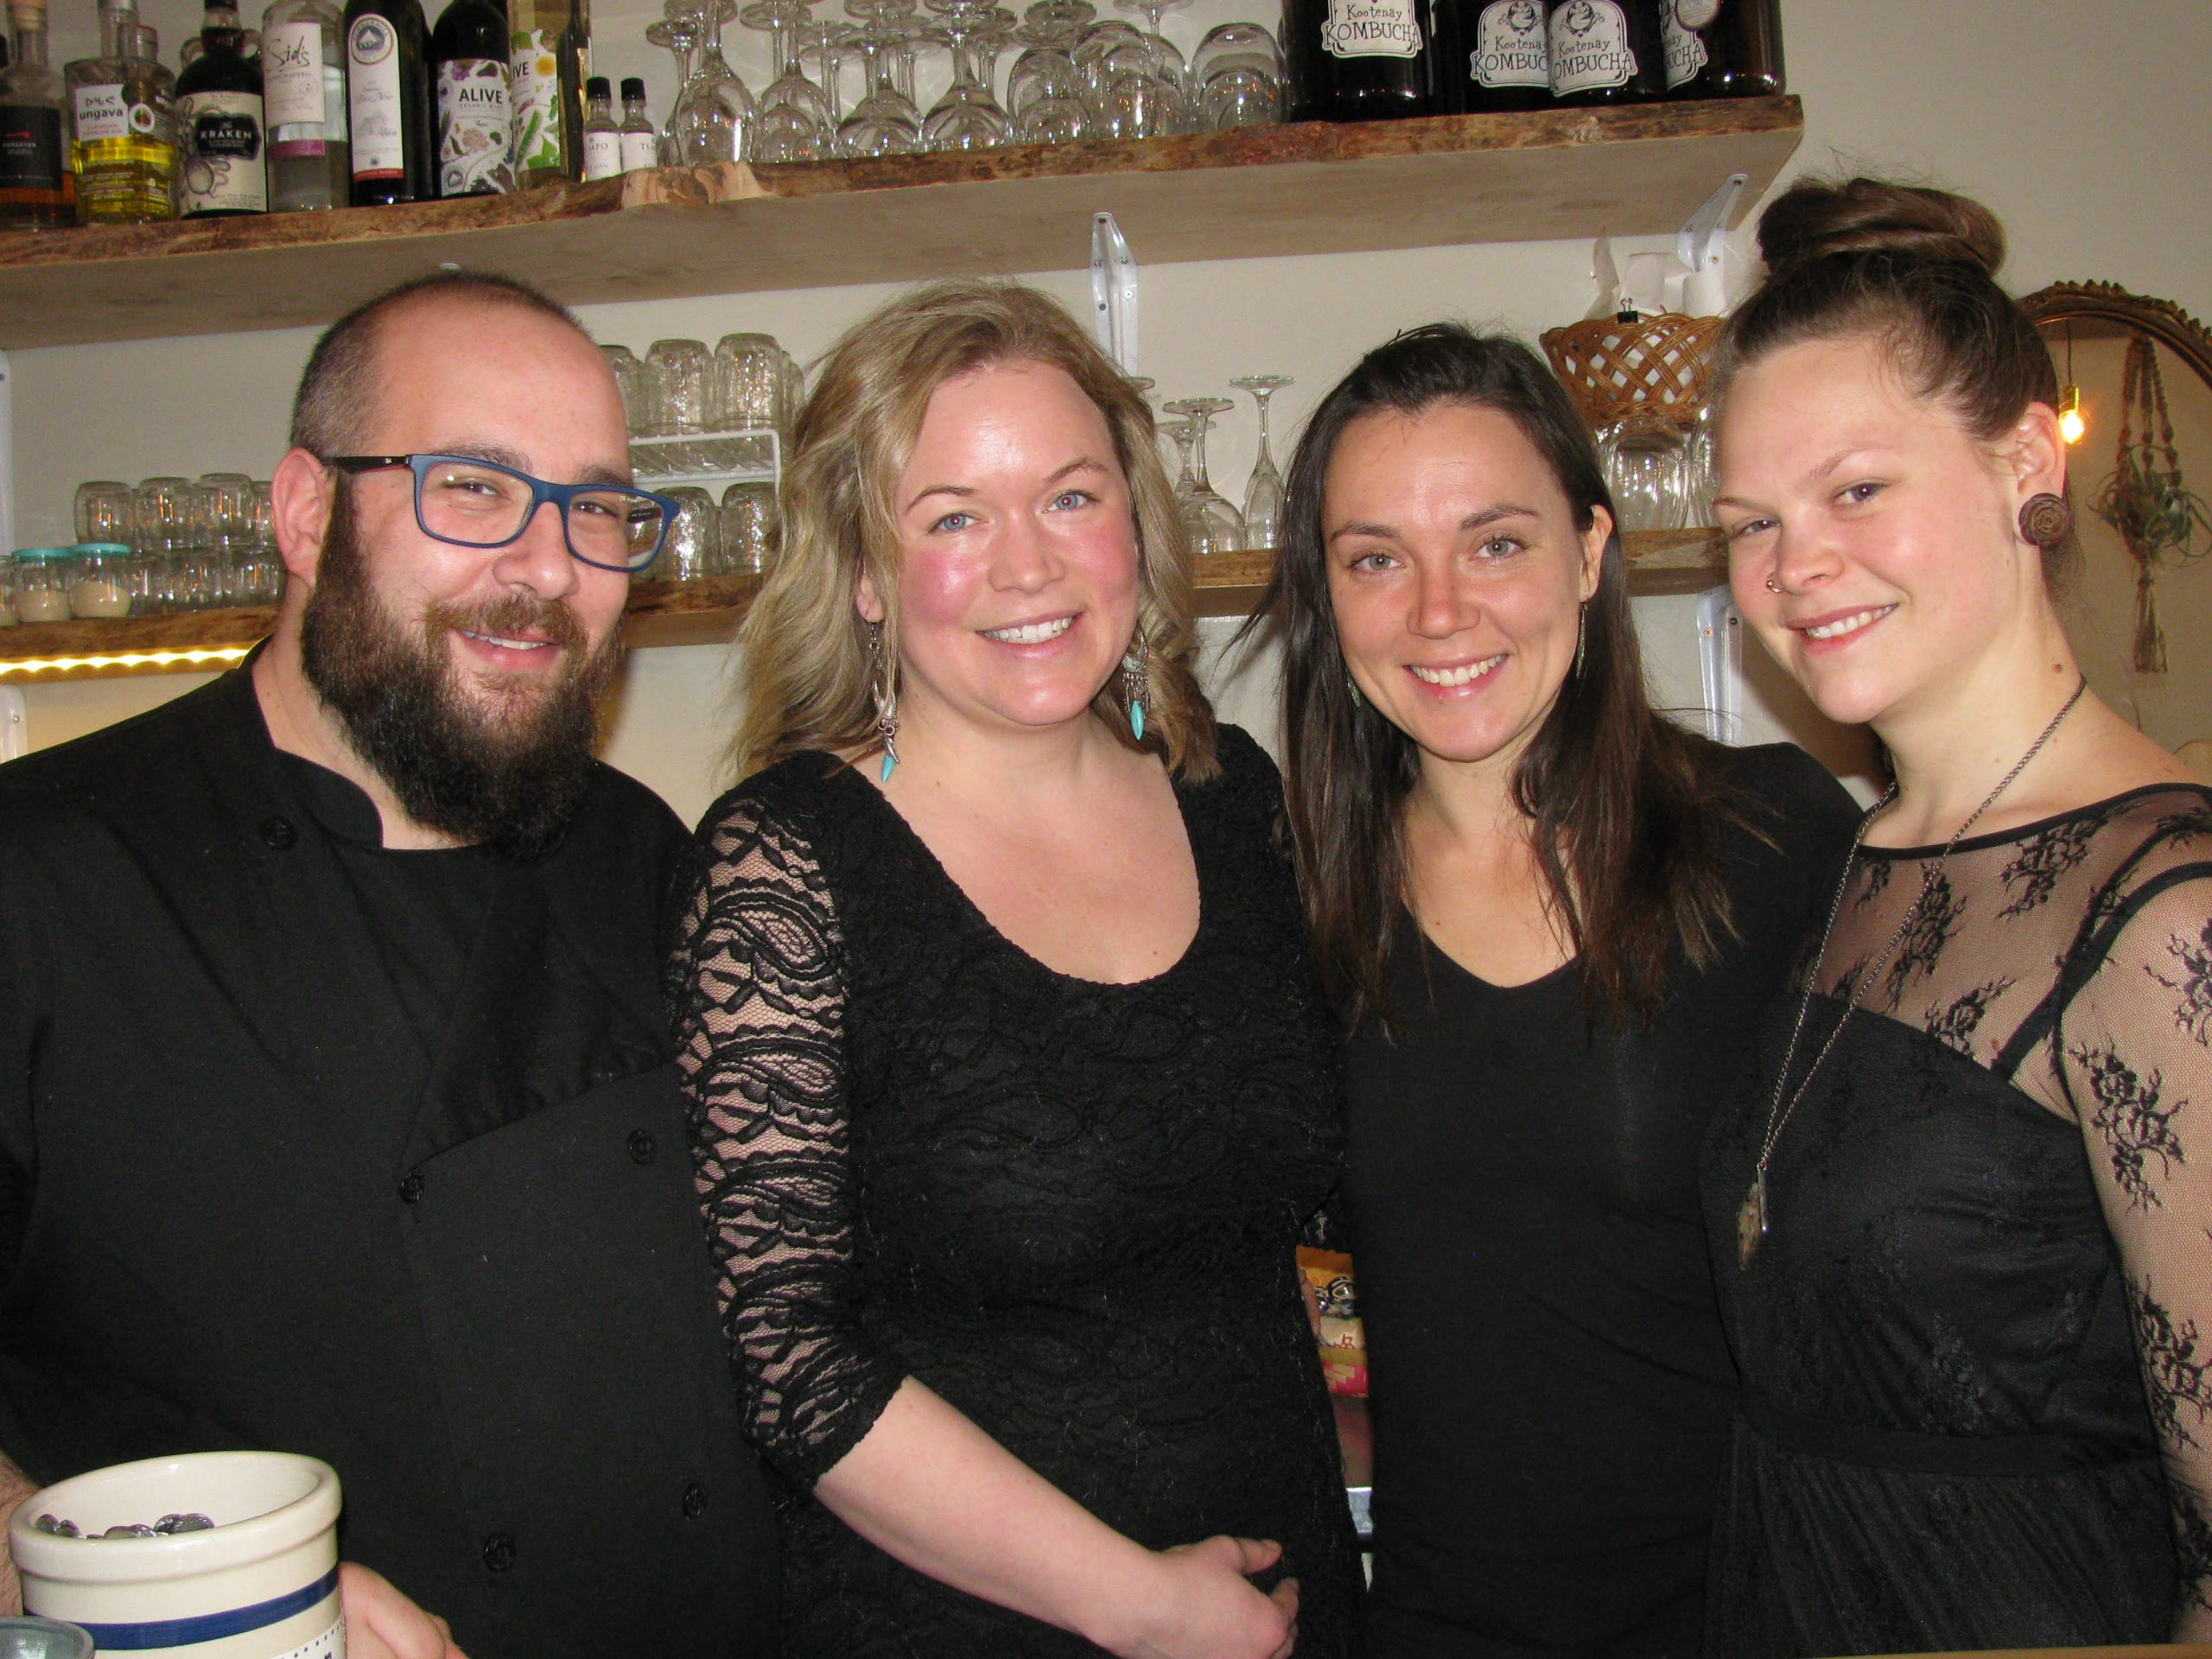 Cranbrook restaurant hopes to pay-it-forward, one cup of coffee at a time